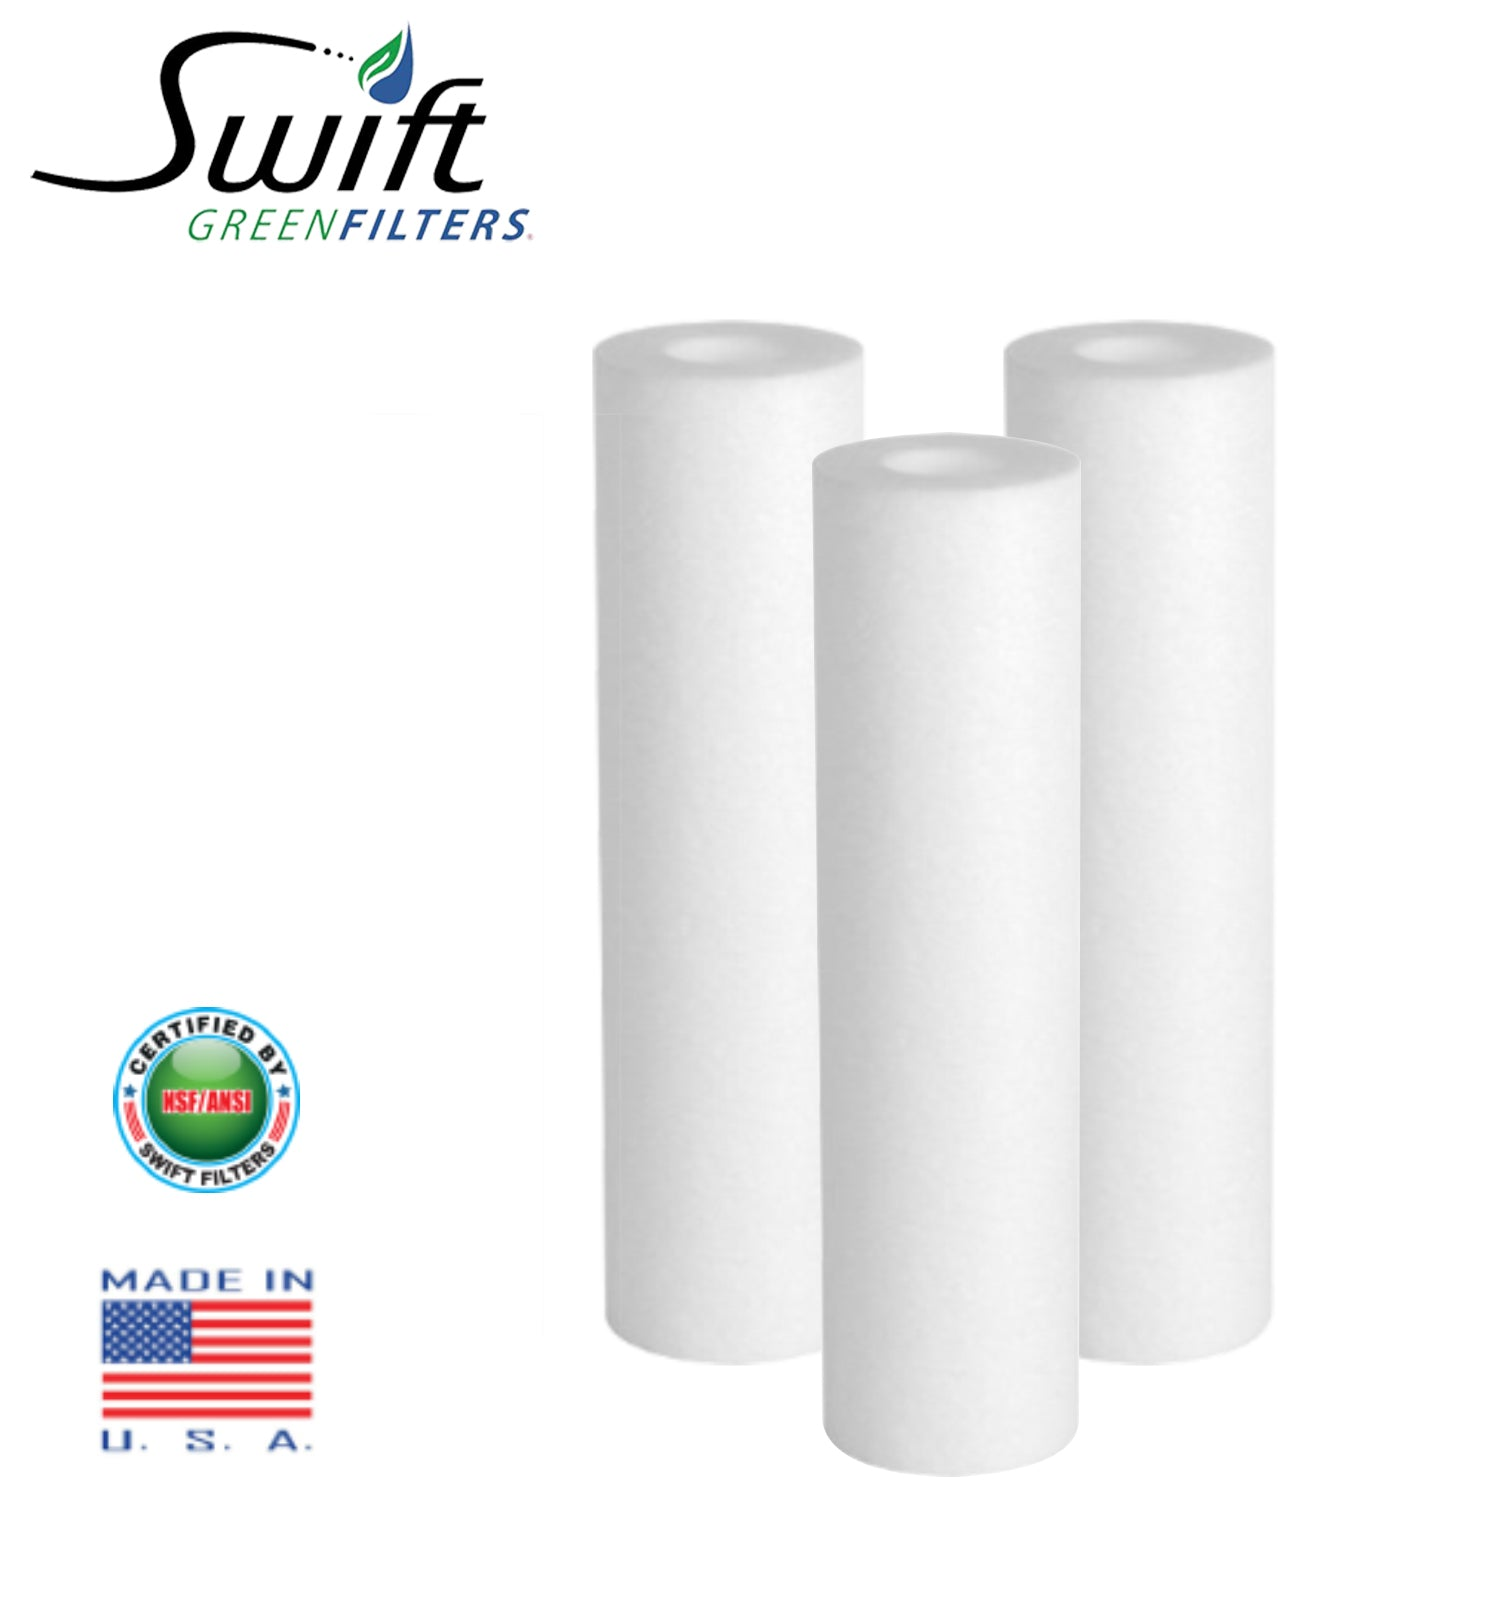 "20 Micron Sediment Water Filter Cartridge for Reverse Osmosis 2.5"" x 40"" by Swift Green Filters"